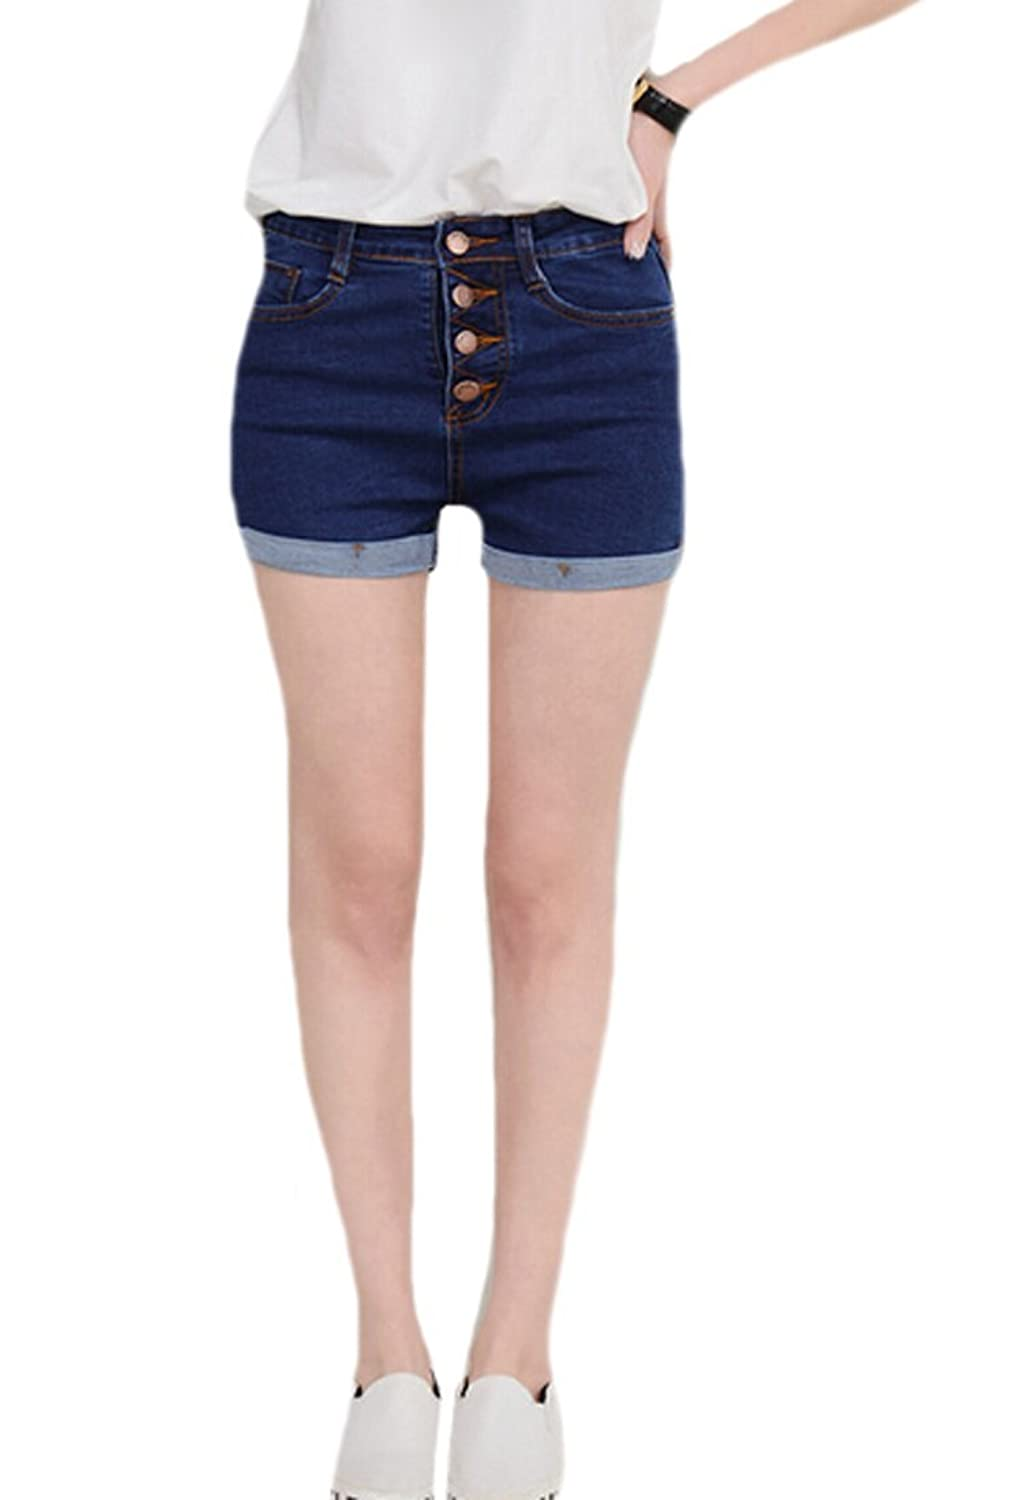 YUNY Womens High Rise Crimping Button Jeans Blue Shorts